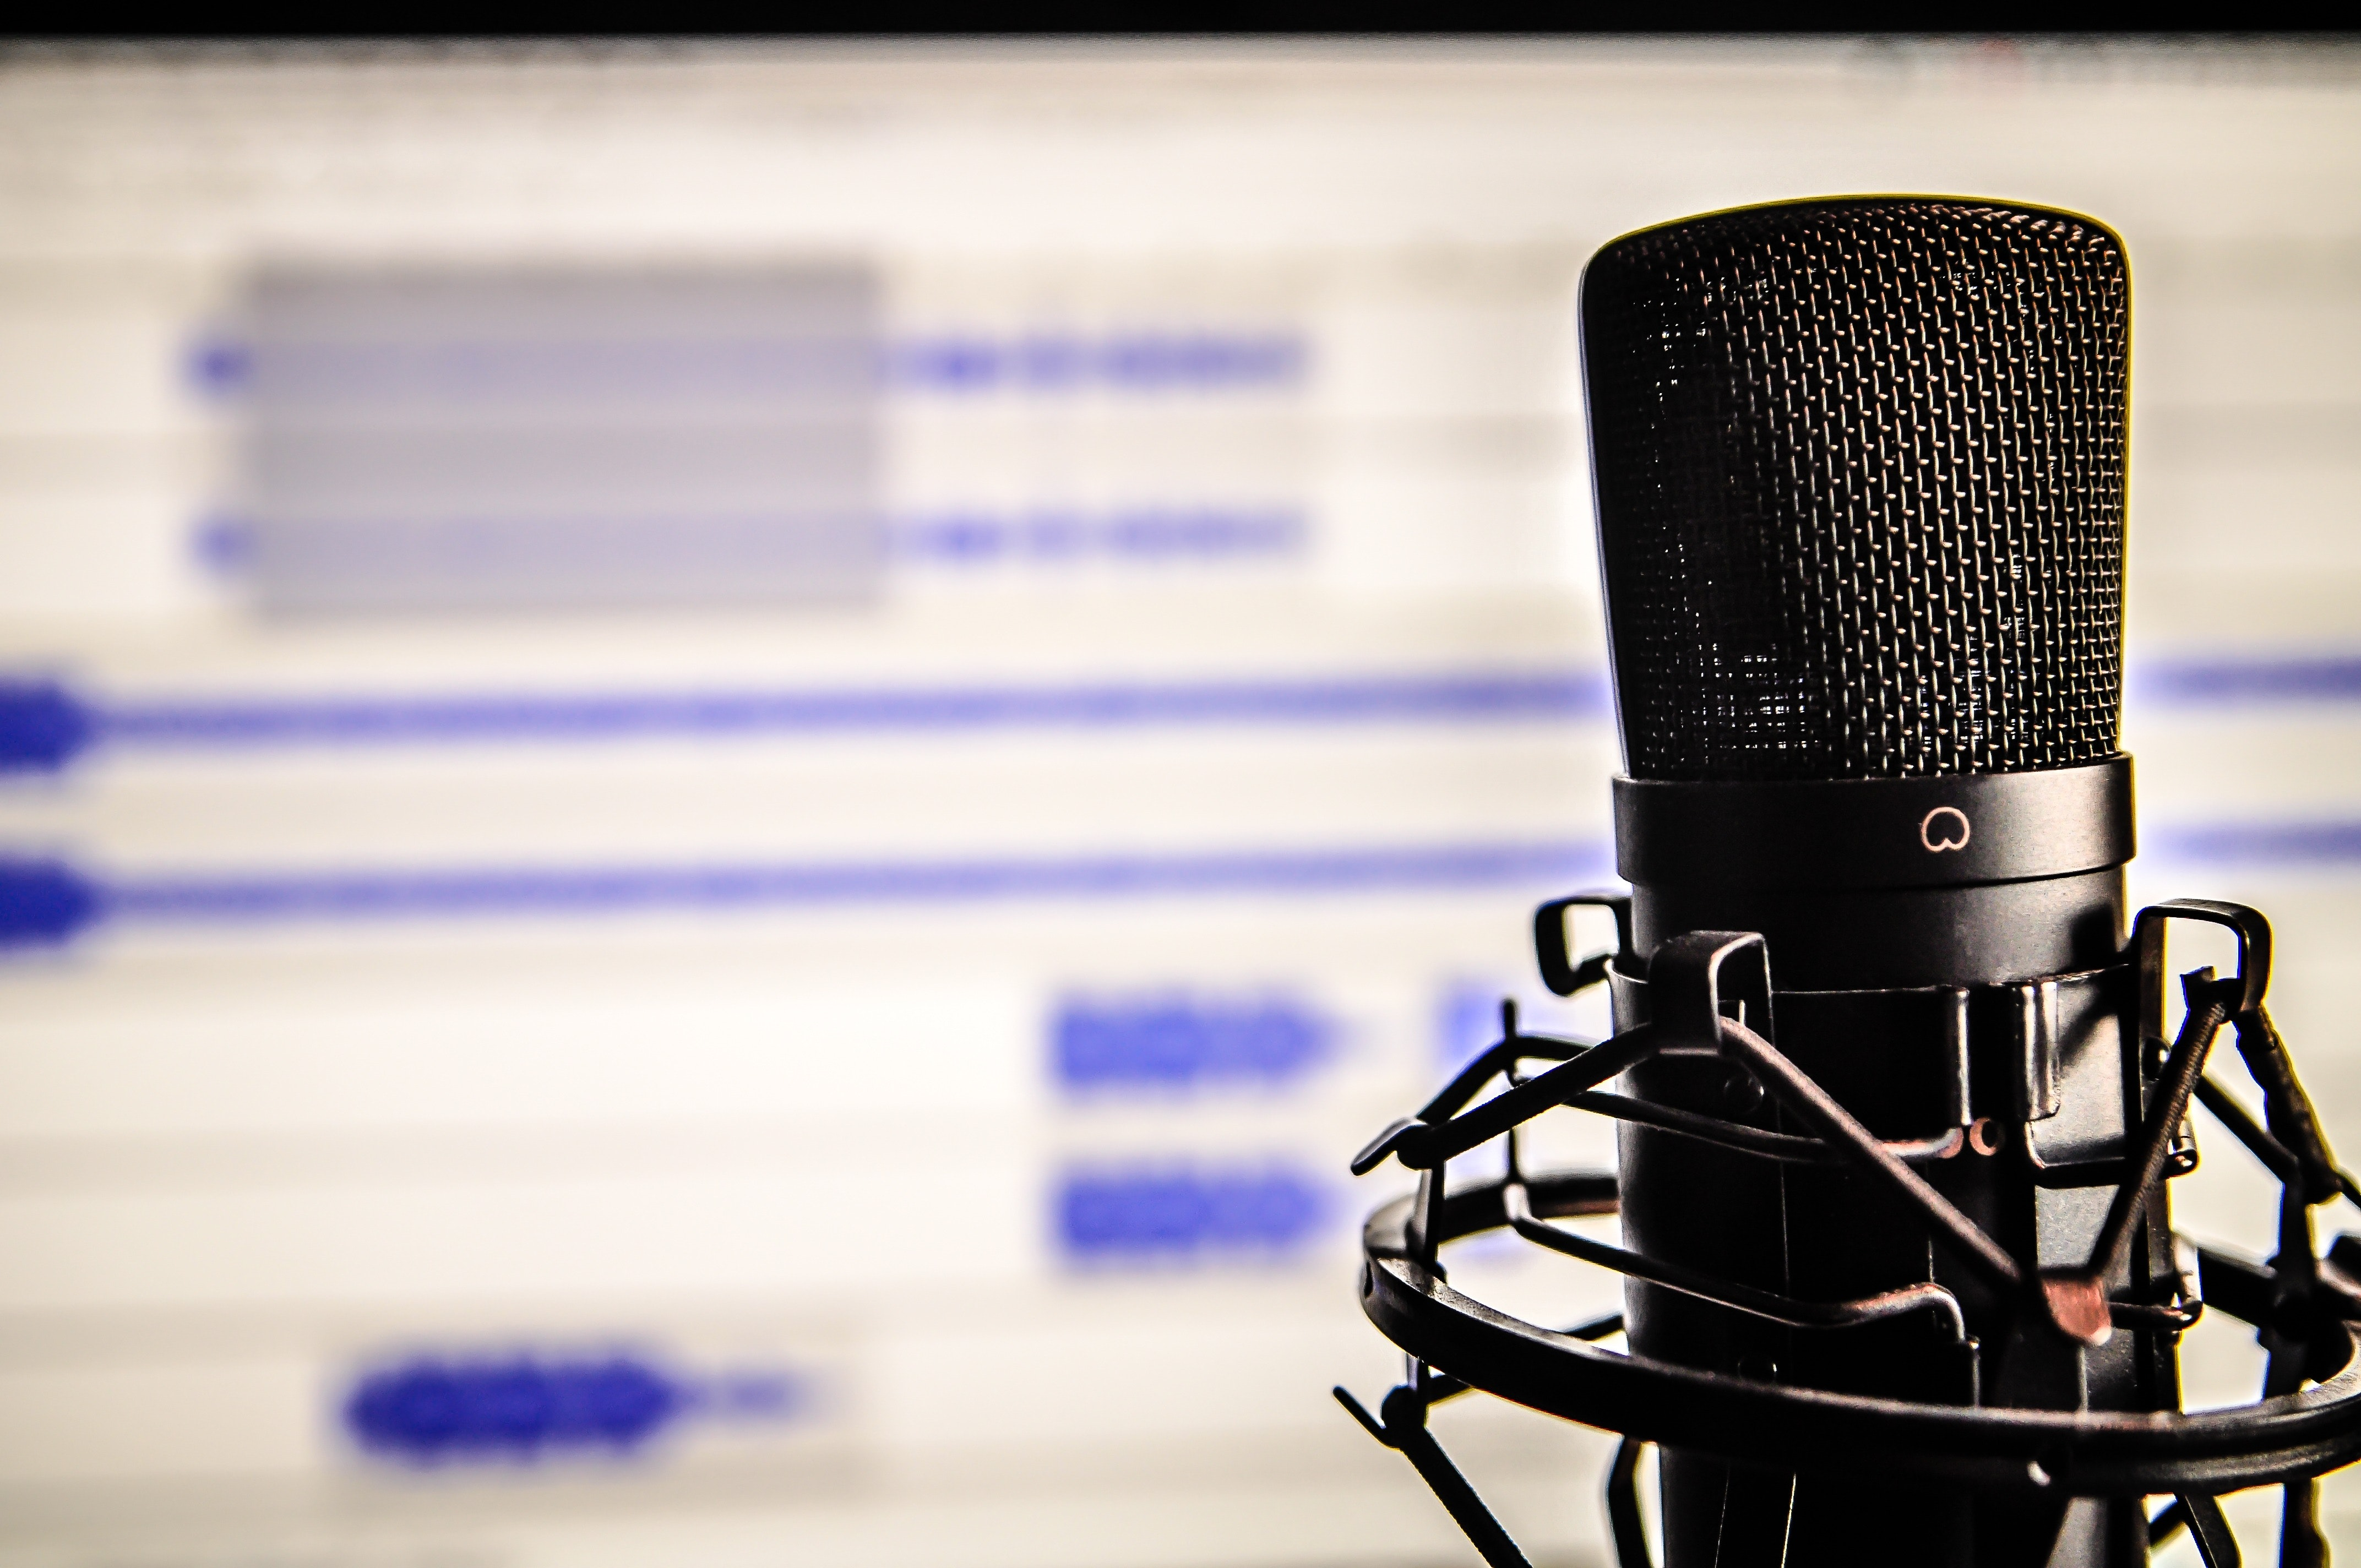 Microphone in front of desktop monitor showing audio editing program